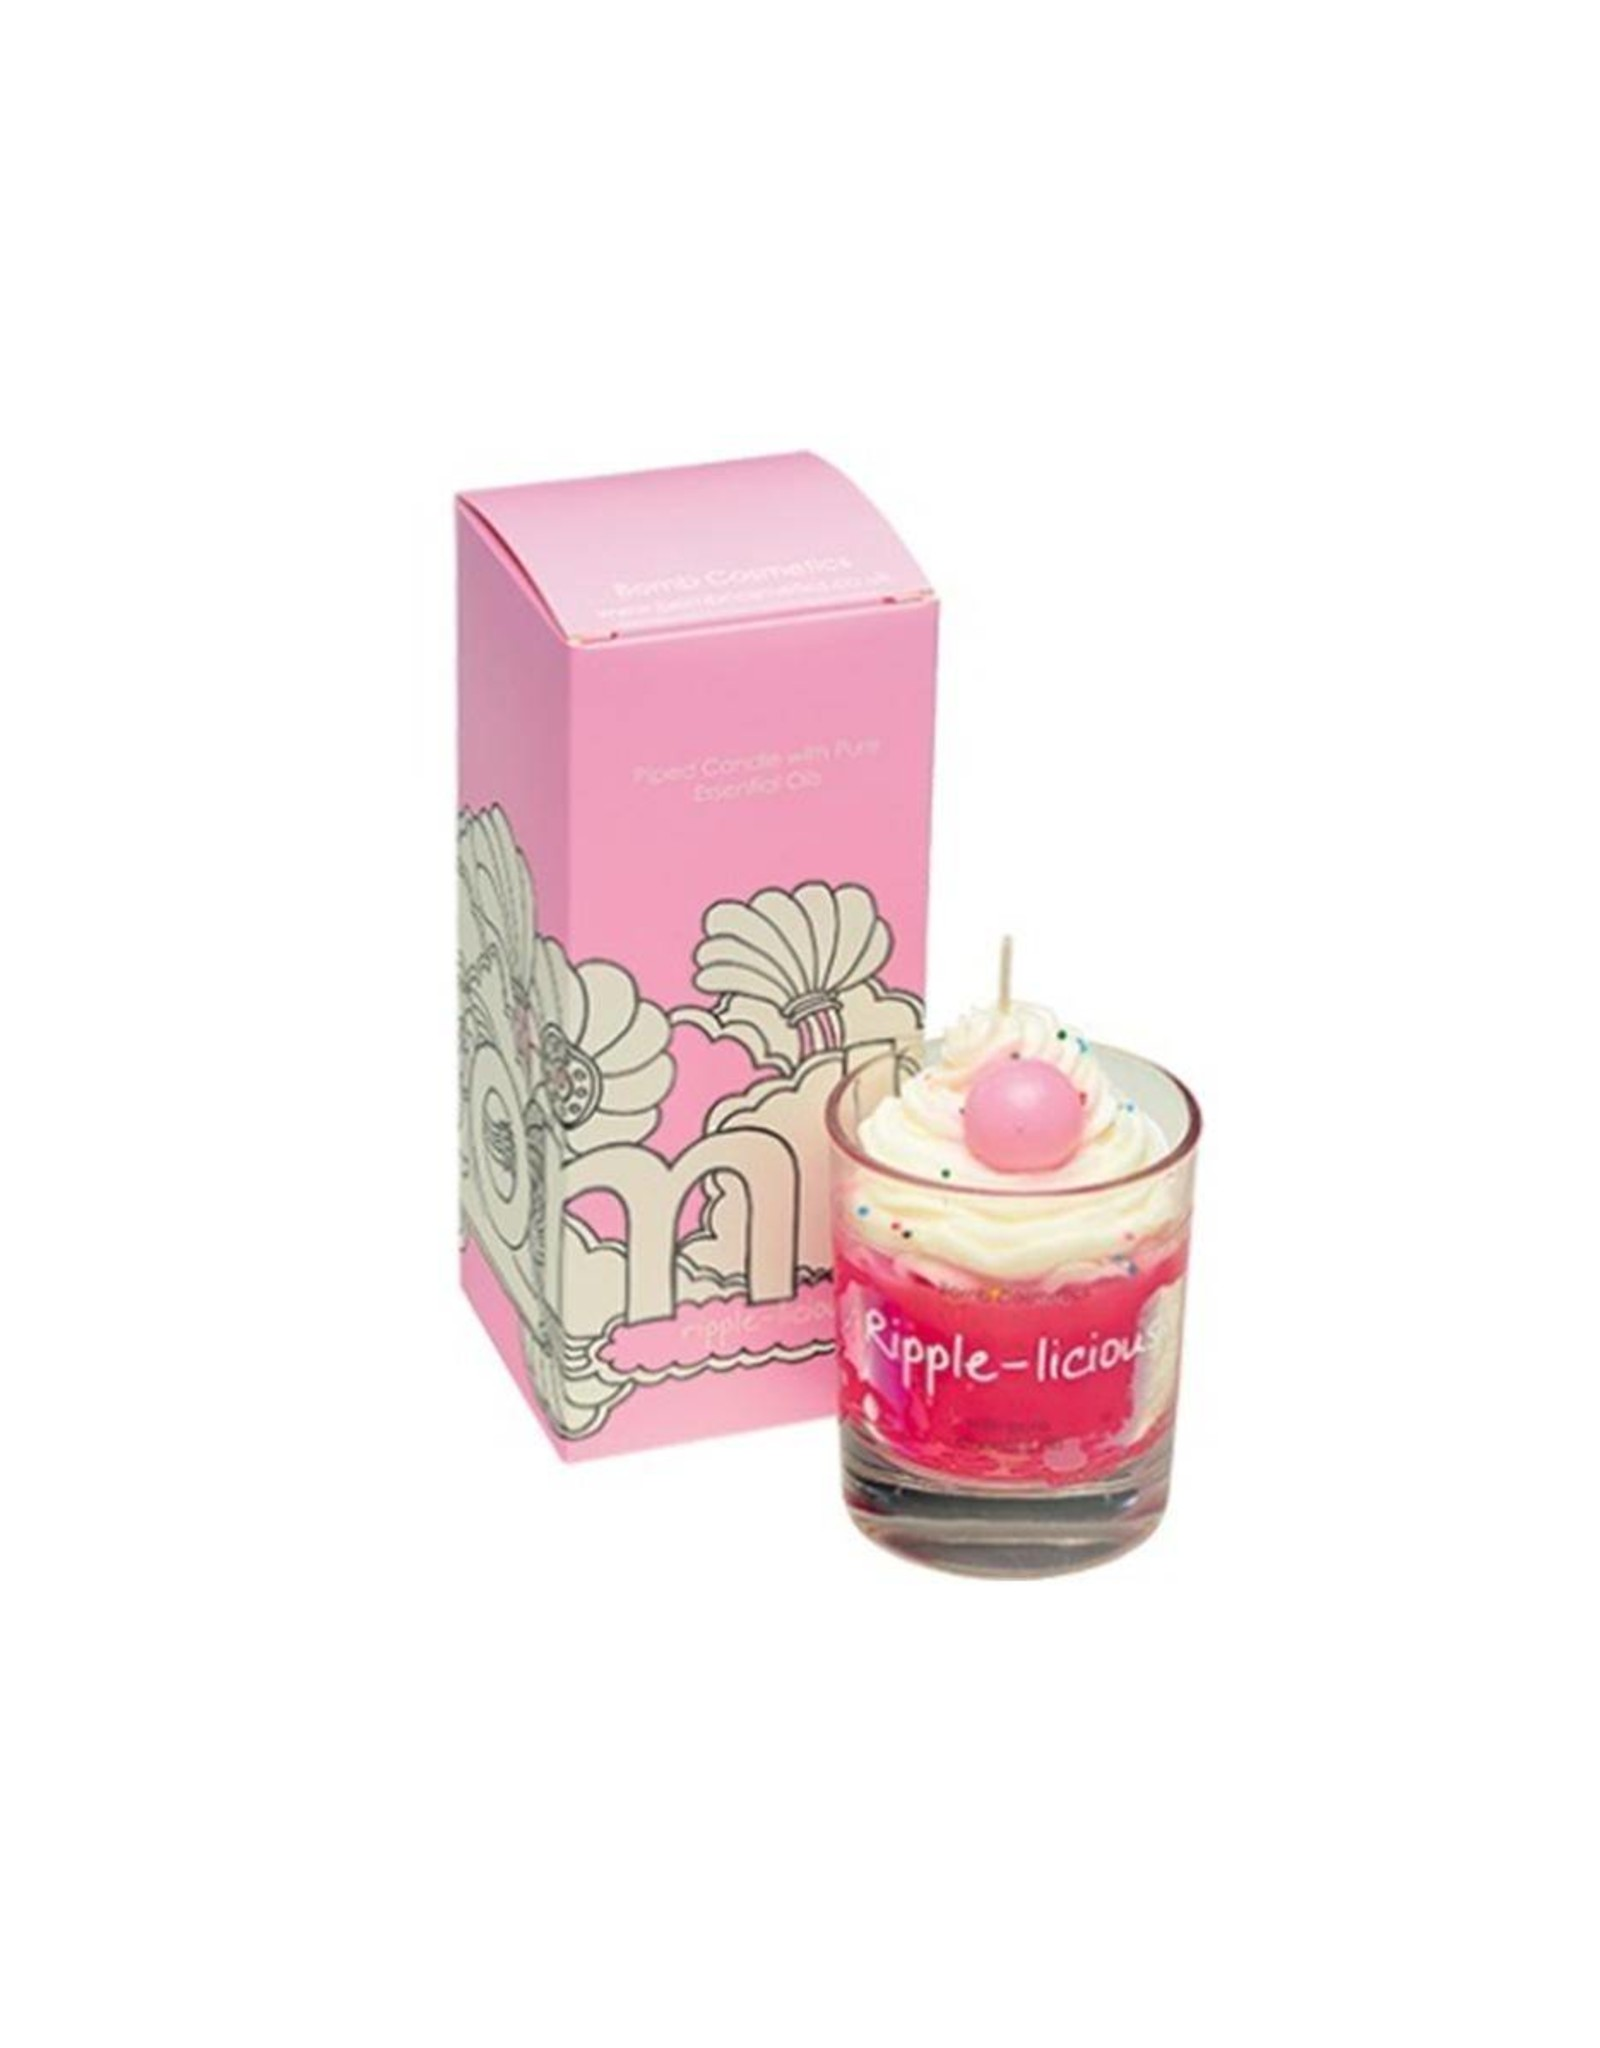 Bomb Cosmetics Geurkaars 'Ripple Licious Whipped Piped Candle' - Body & Soap